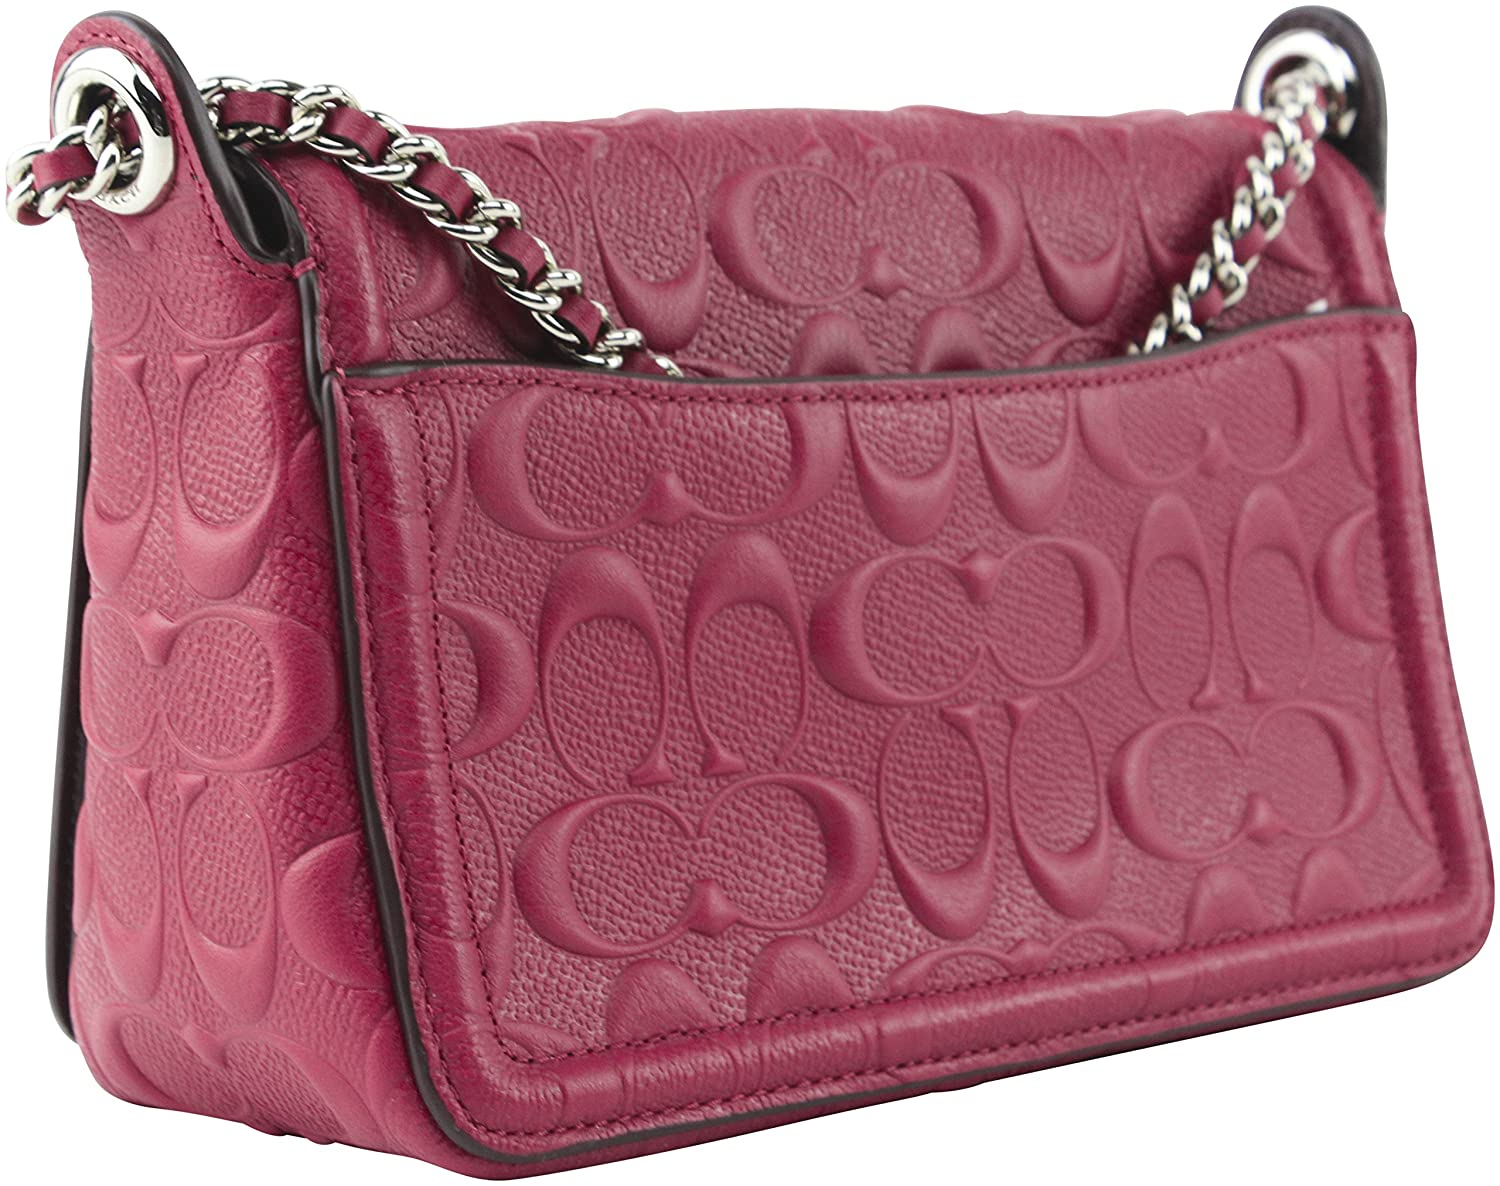 9875d5f800 Amazon.com  Coach Women s Lex Flap SV Hot Pink Signature Patent Leather  Cross Body Bag